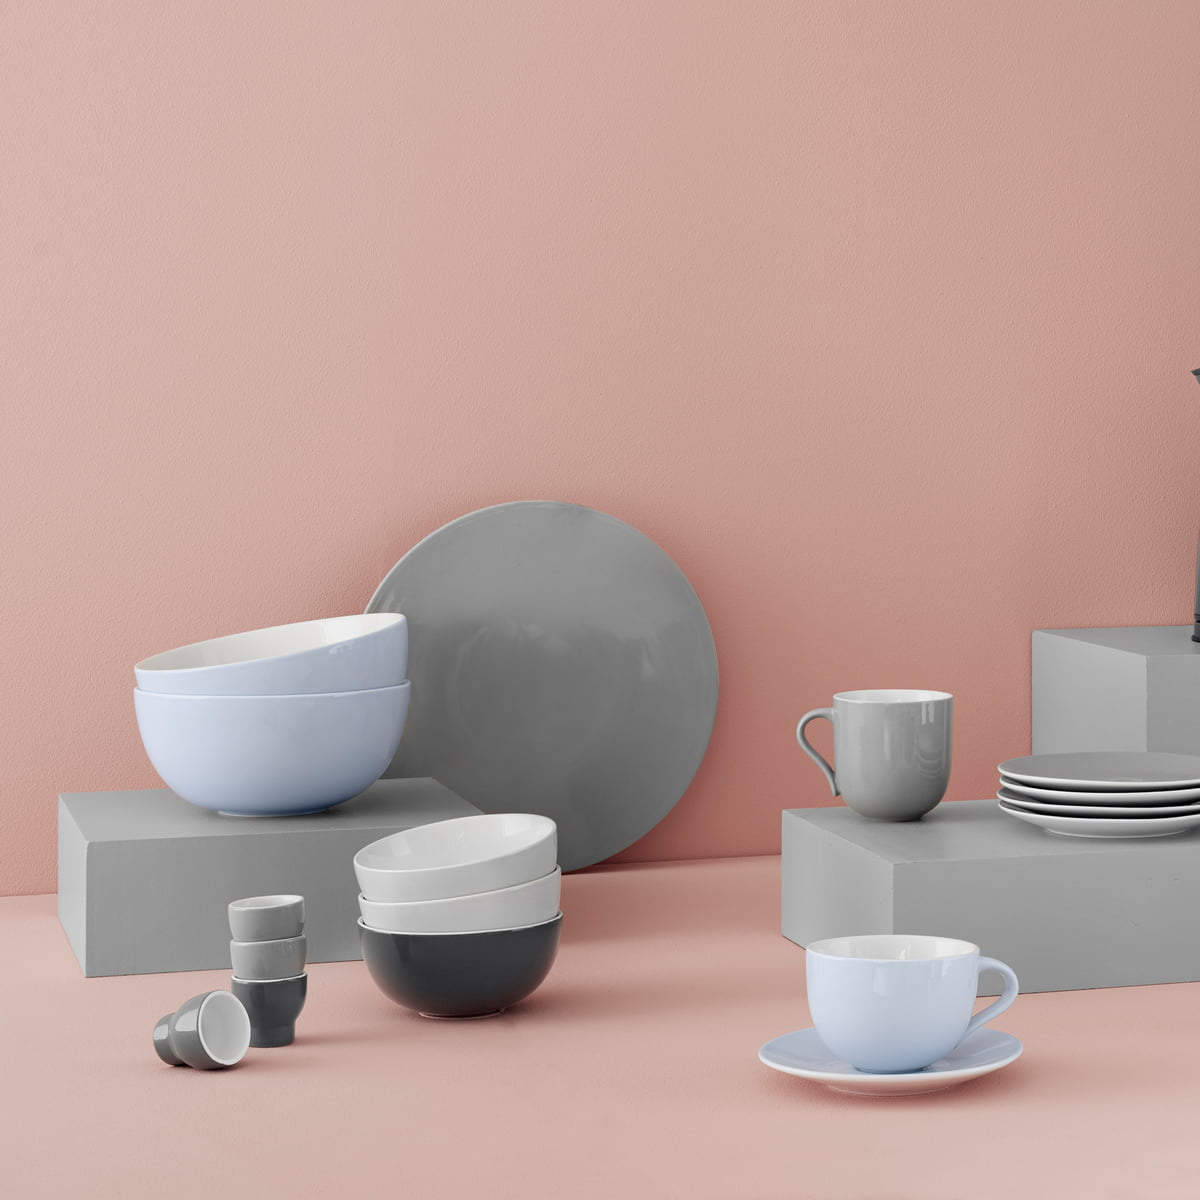 Stelton - Emma Collection & Emma plates (set of 2) by Stelton in the shop